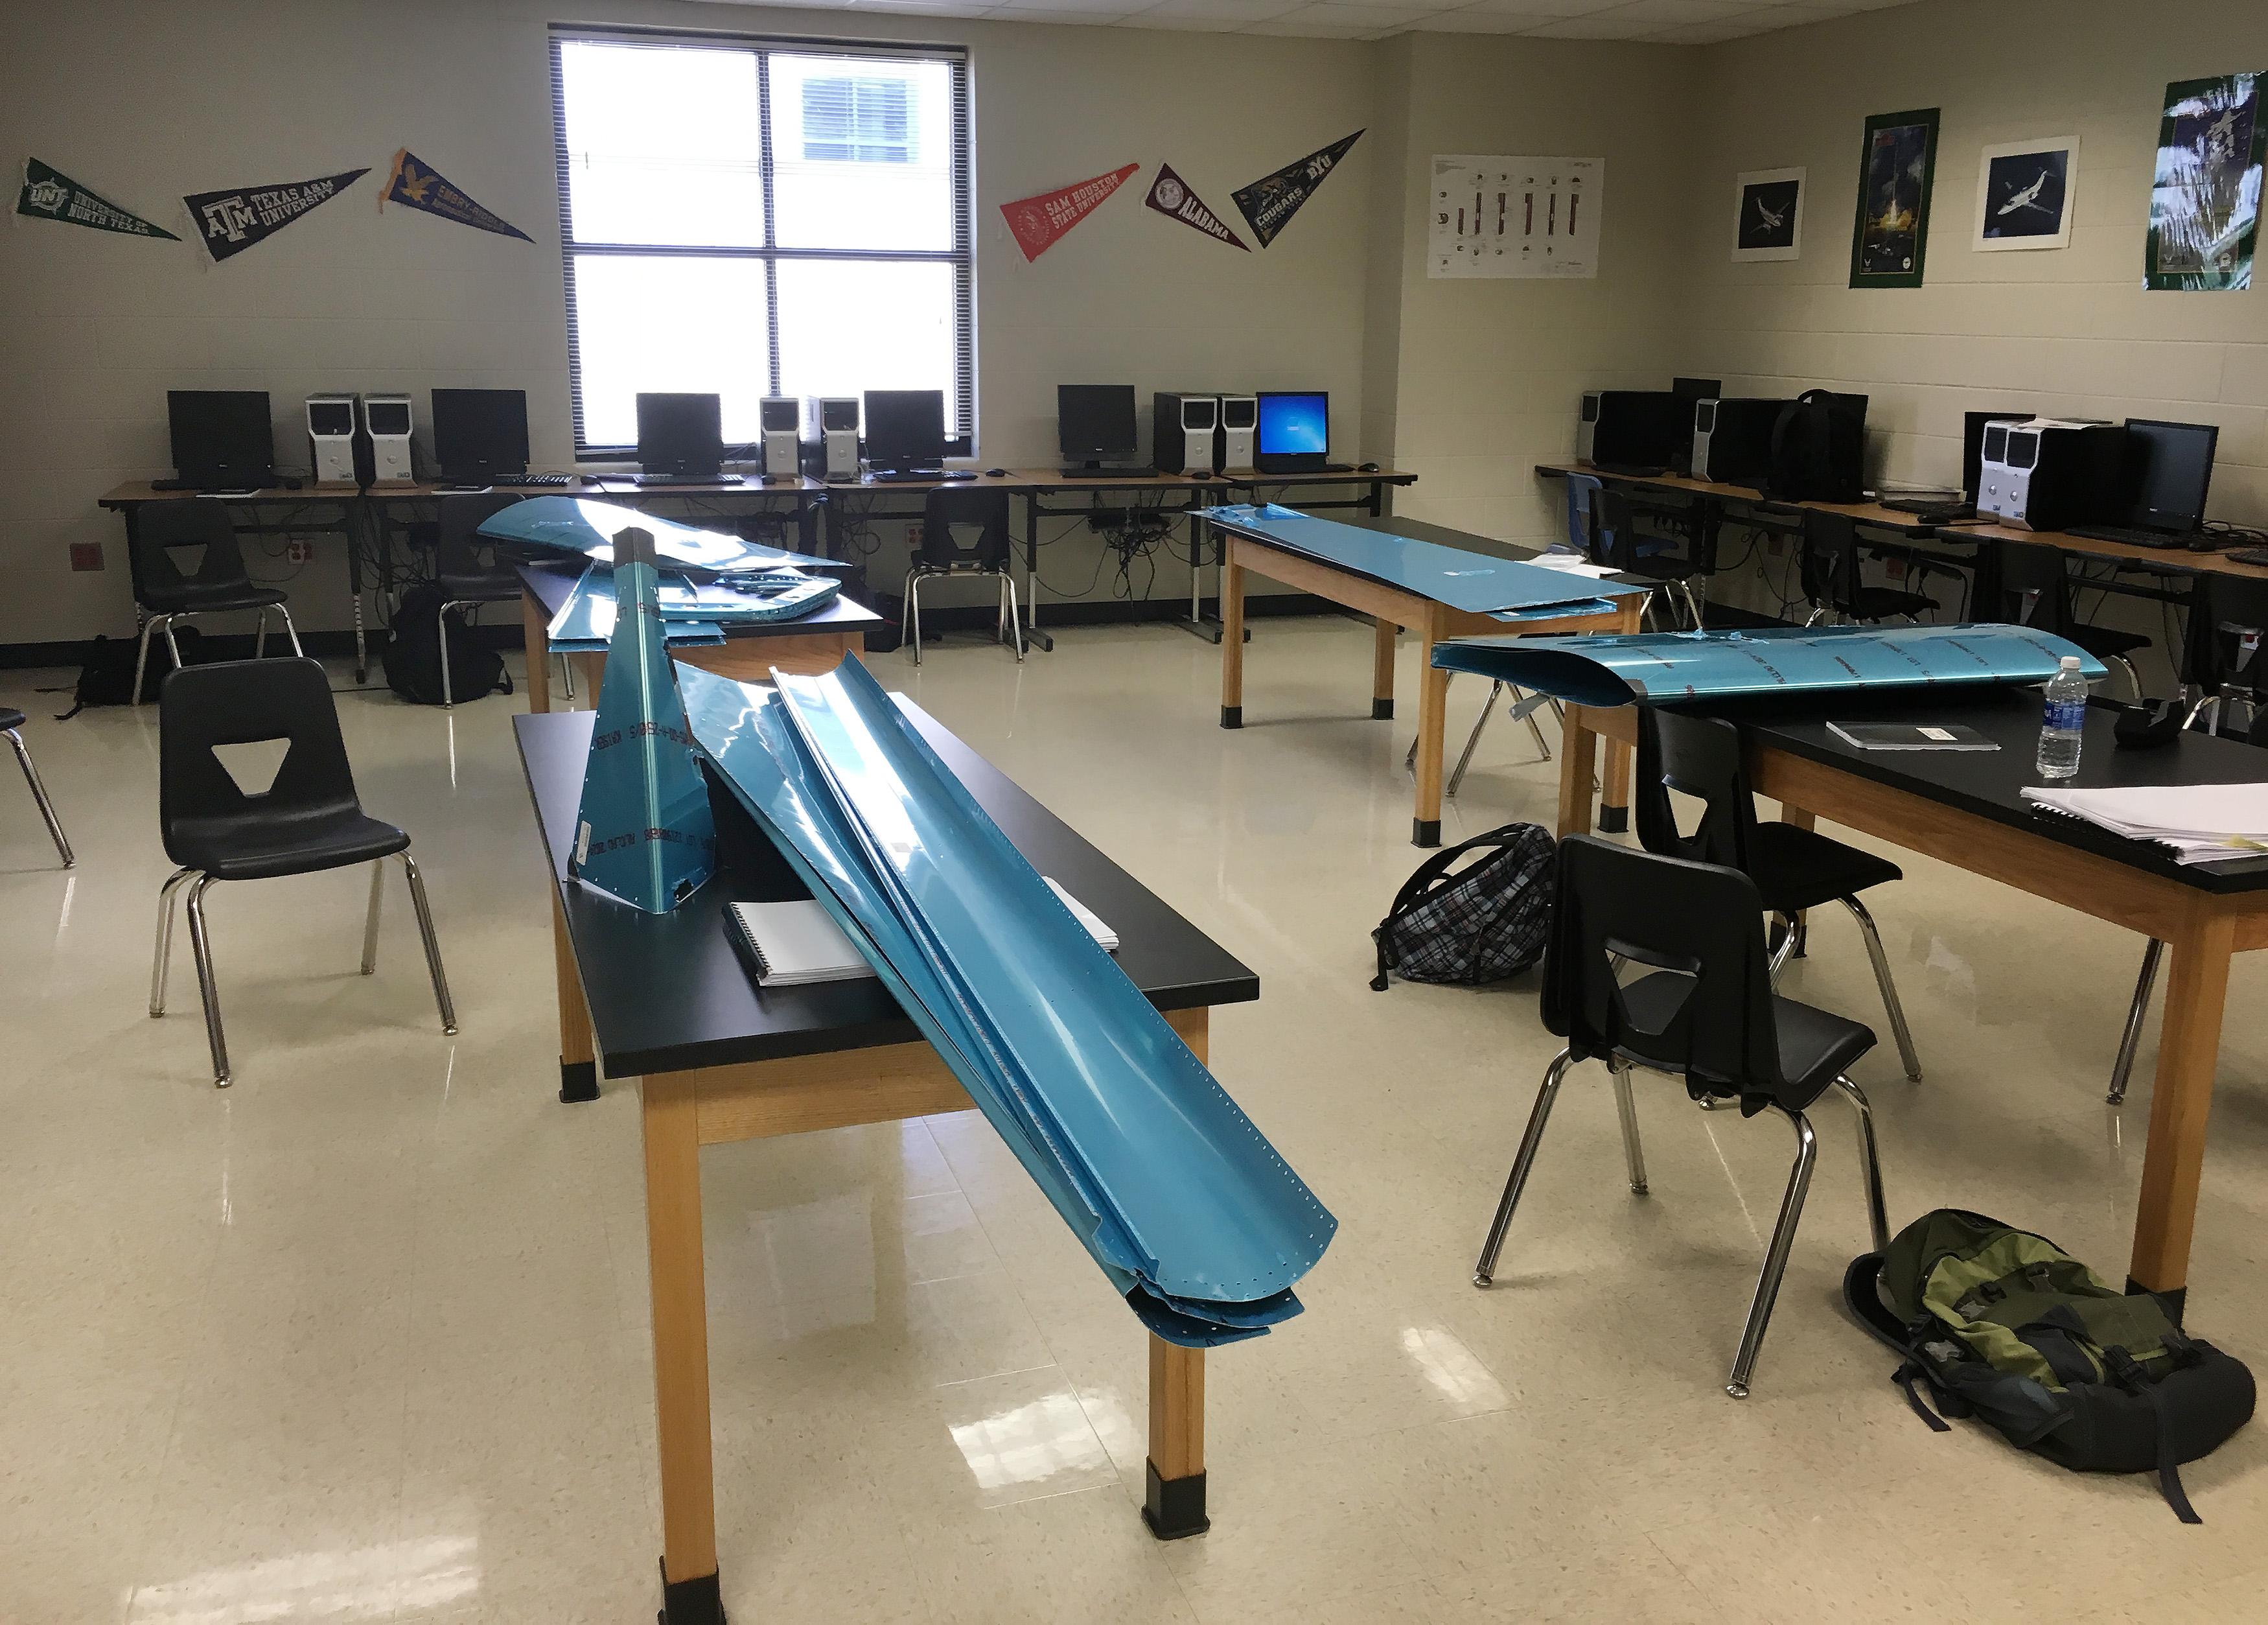 Engineering teacher Dan Weyant introduced a Van's Aircraft RV-12 airplane build project to high schools in Georgetown, Texas, as part of their science, technology, engineering, and math-driven curriculum. Photo courtesy of Dan Weyant.